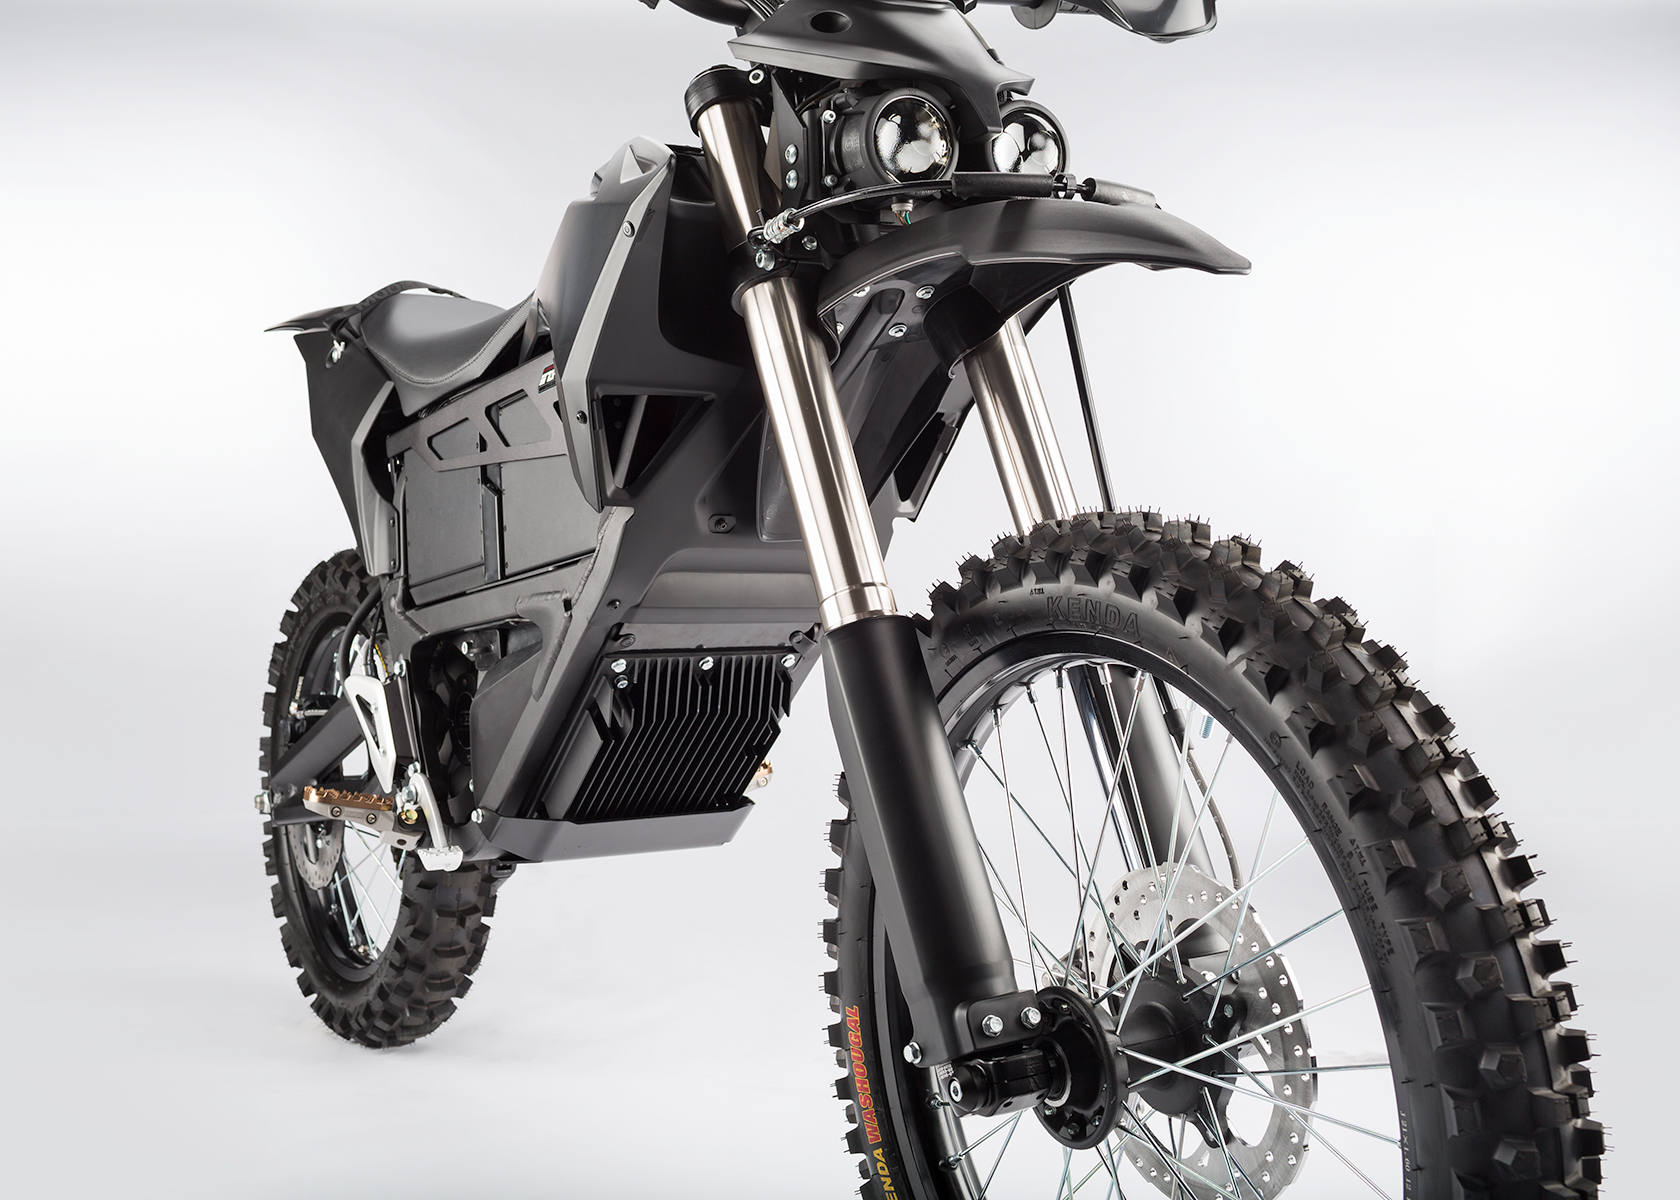 2014 Zero Police Electric Motorcycle: Front Fork